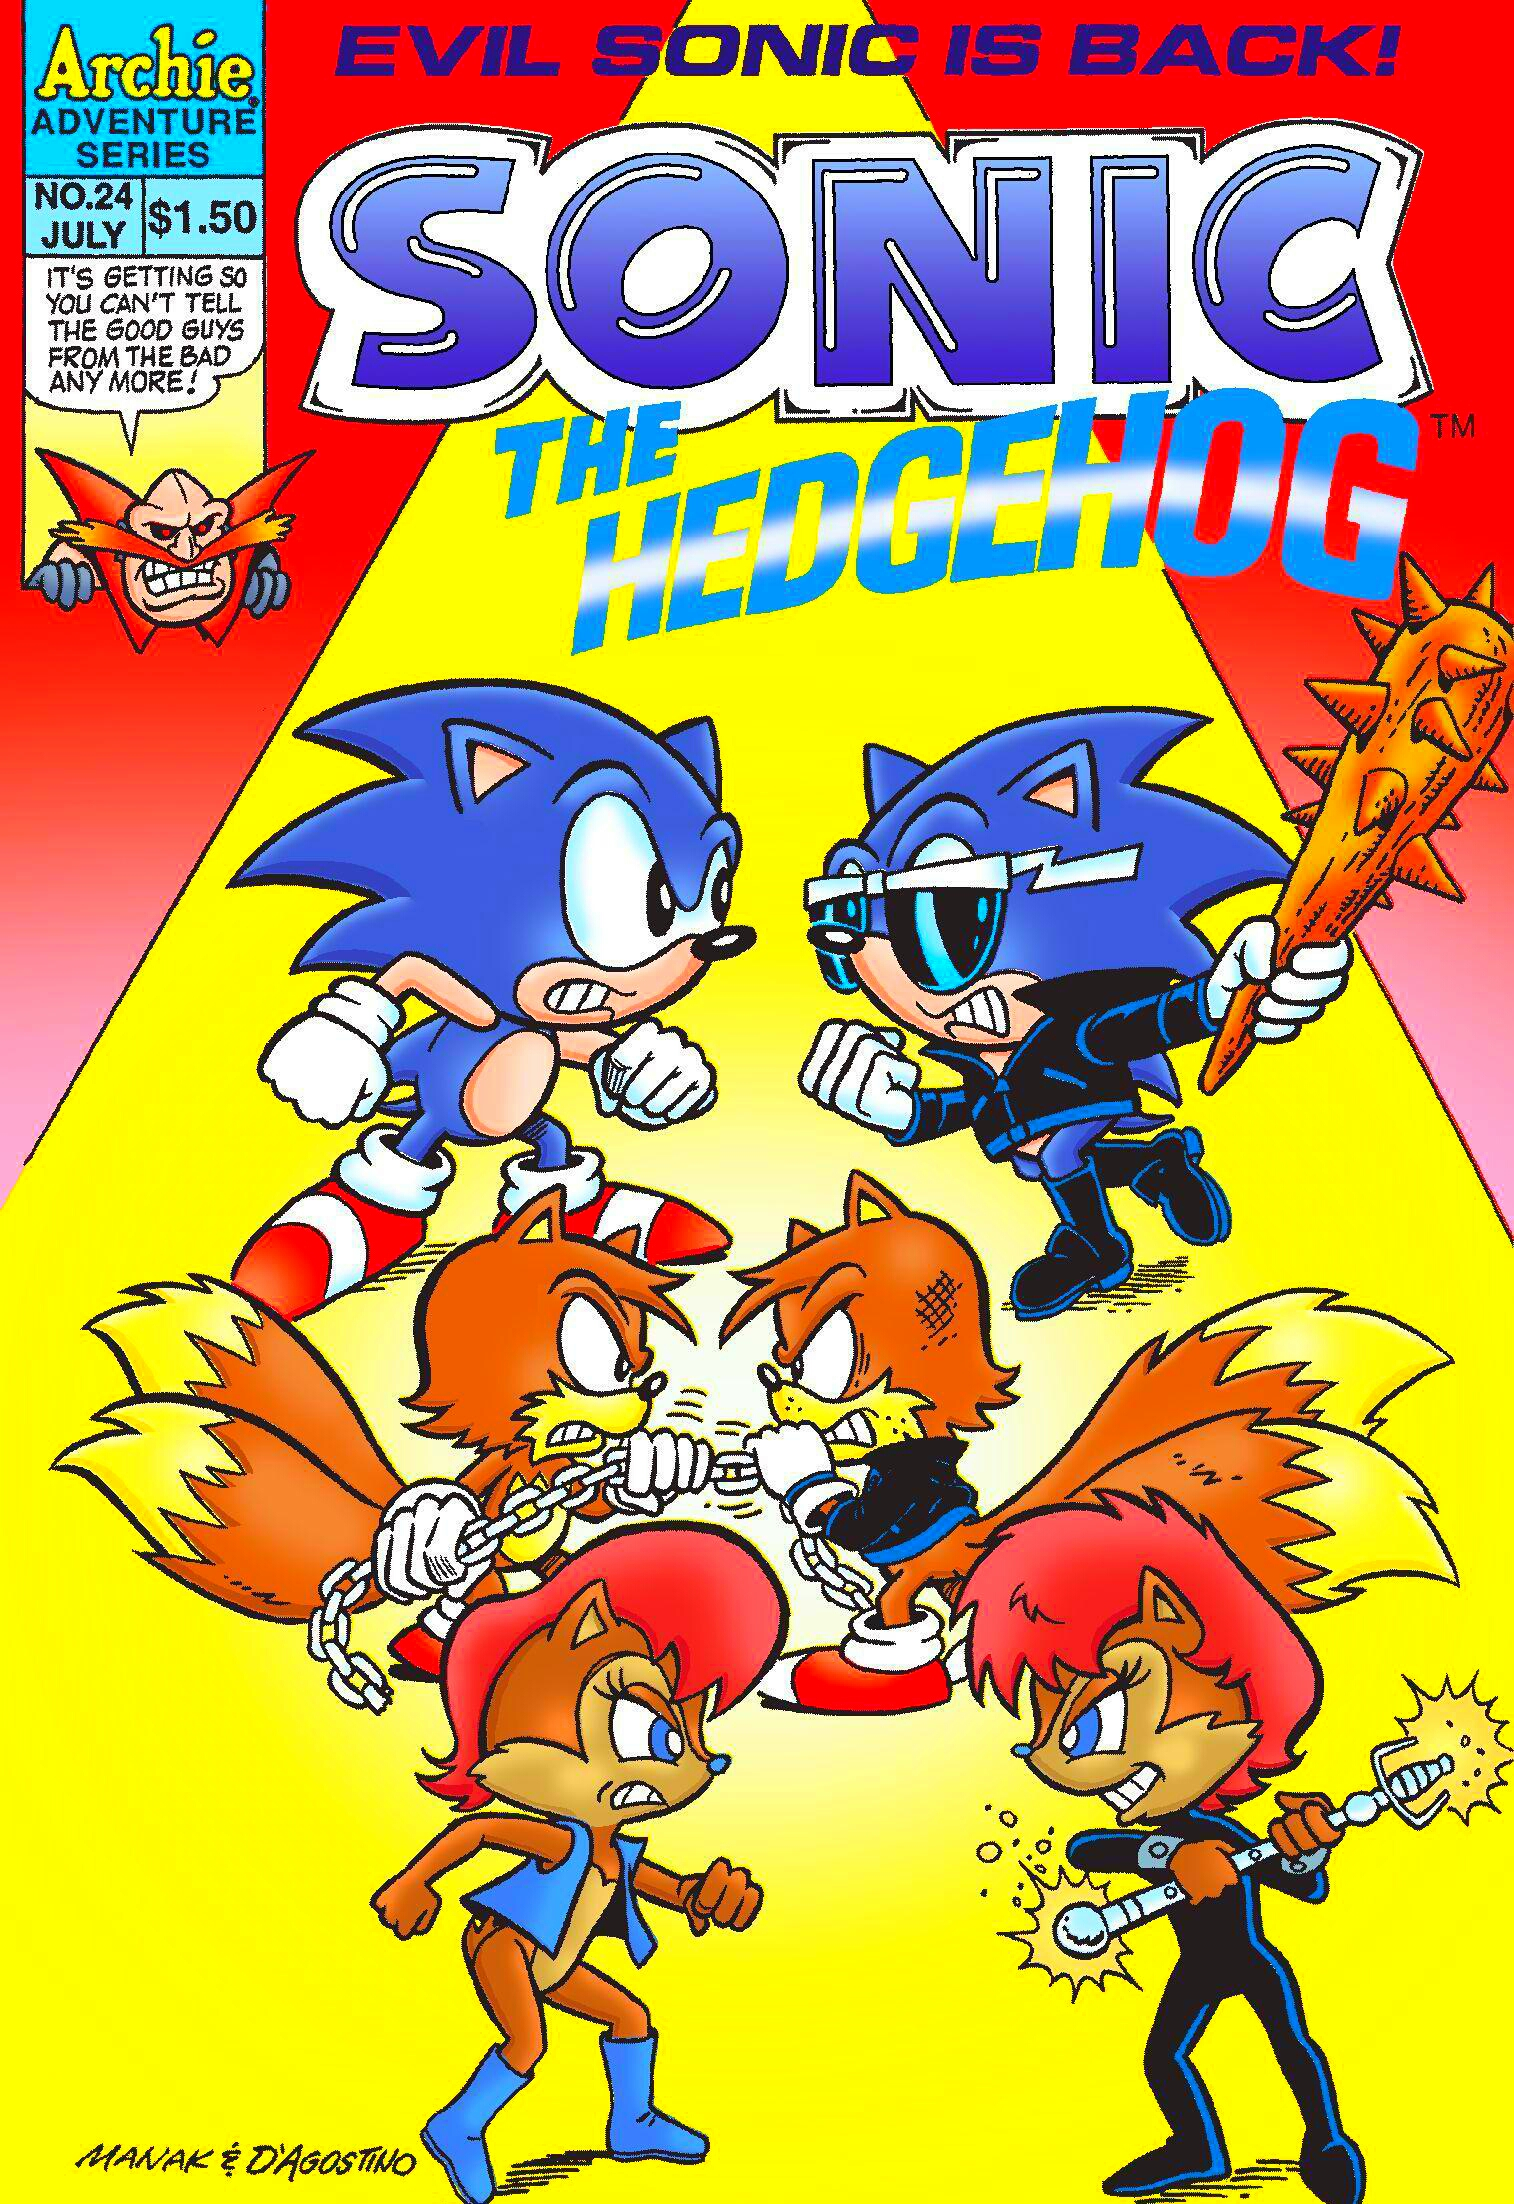 Archie Sonic the Hedgehog Issue 24